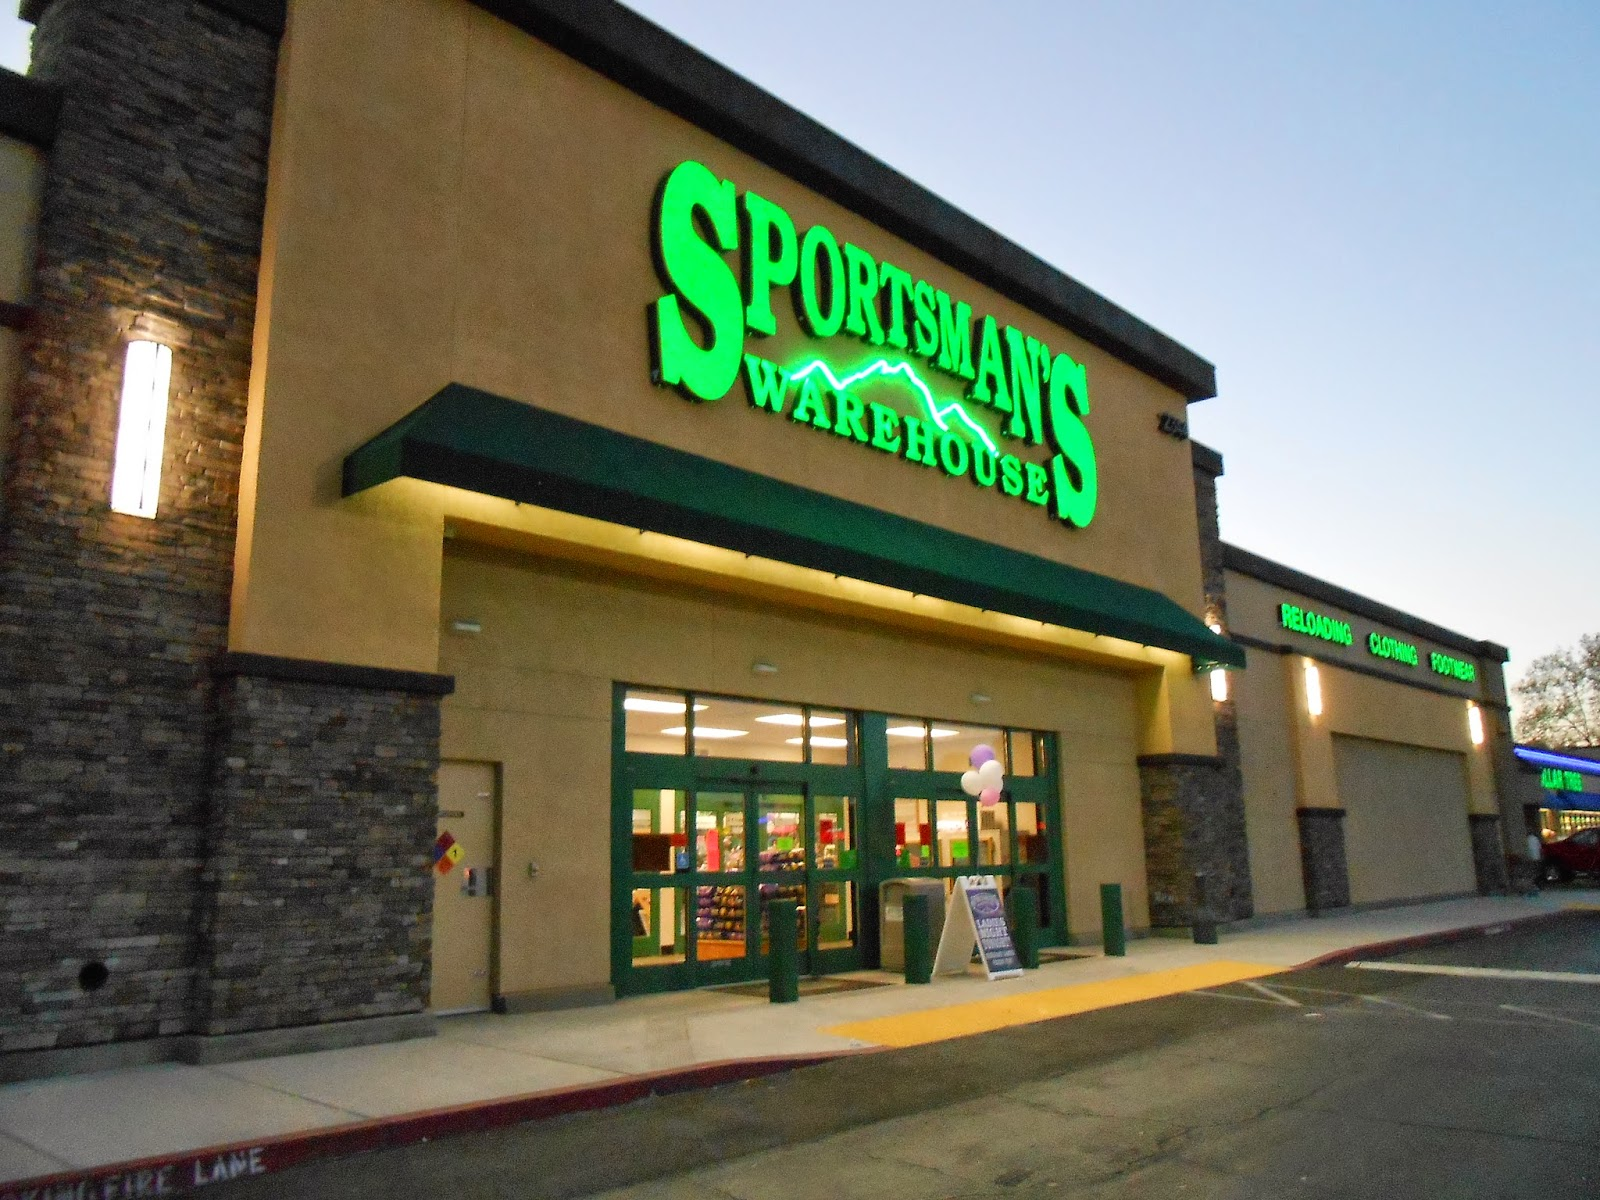 warehouse sportsman sportsmans shopping rivergate center rancho cordova sportsmen wednesday hayden business tackle rocky mountain company outdoor